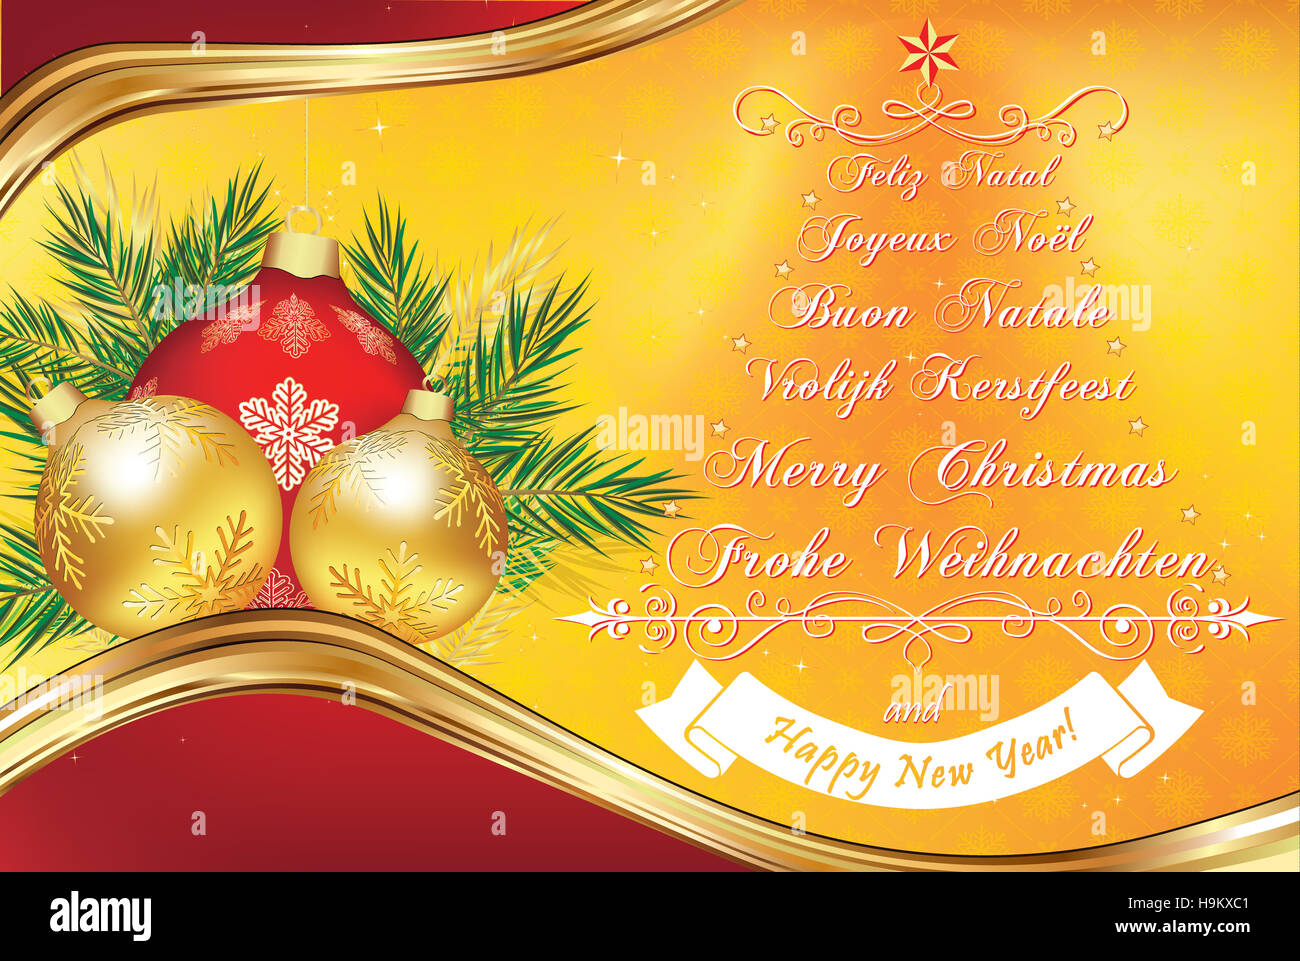 warm new year greeting card in many languages merry christmas in stock photo 126442289 alamy. Black Bedroom Furniture Sets. Home Design Ideas